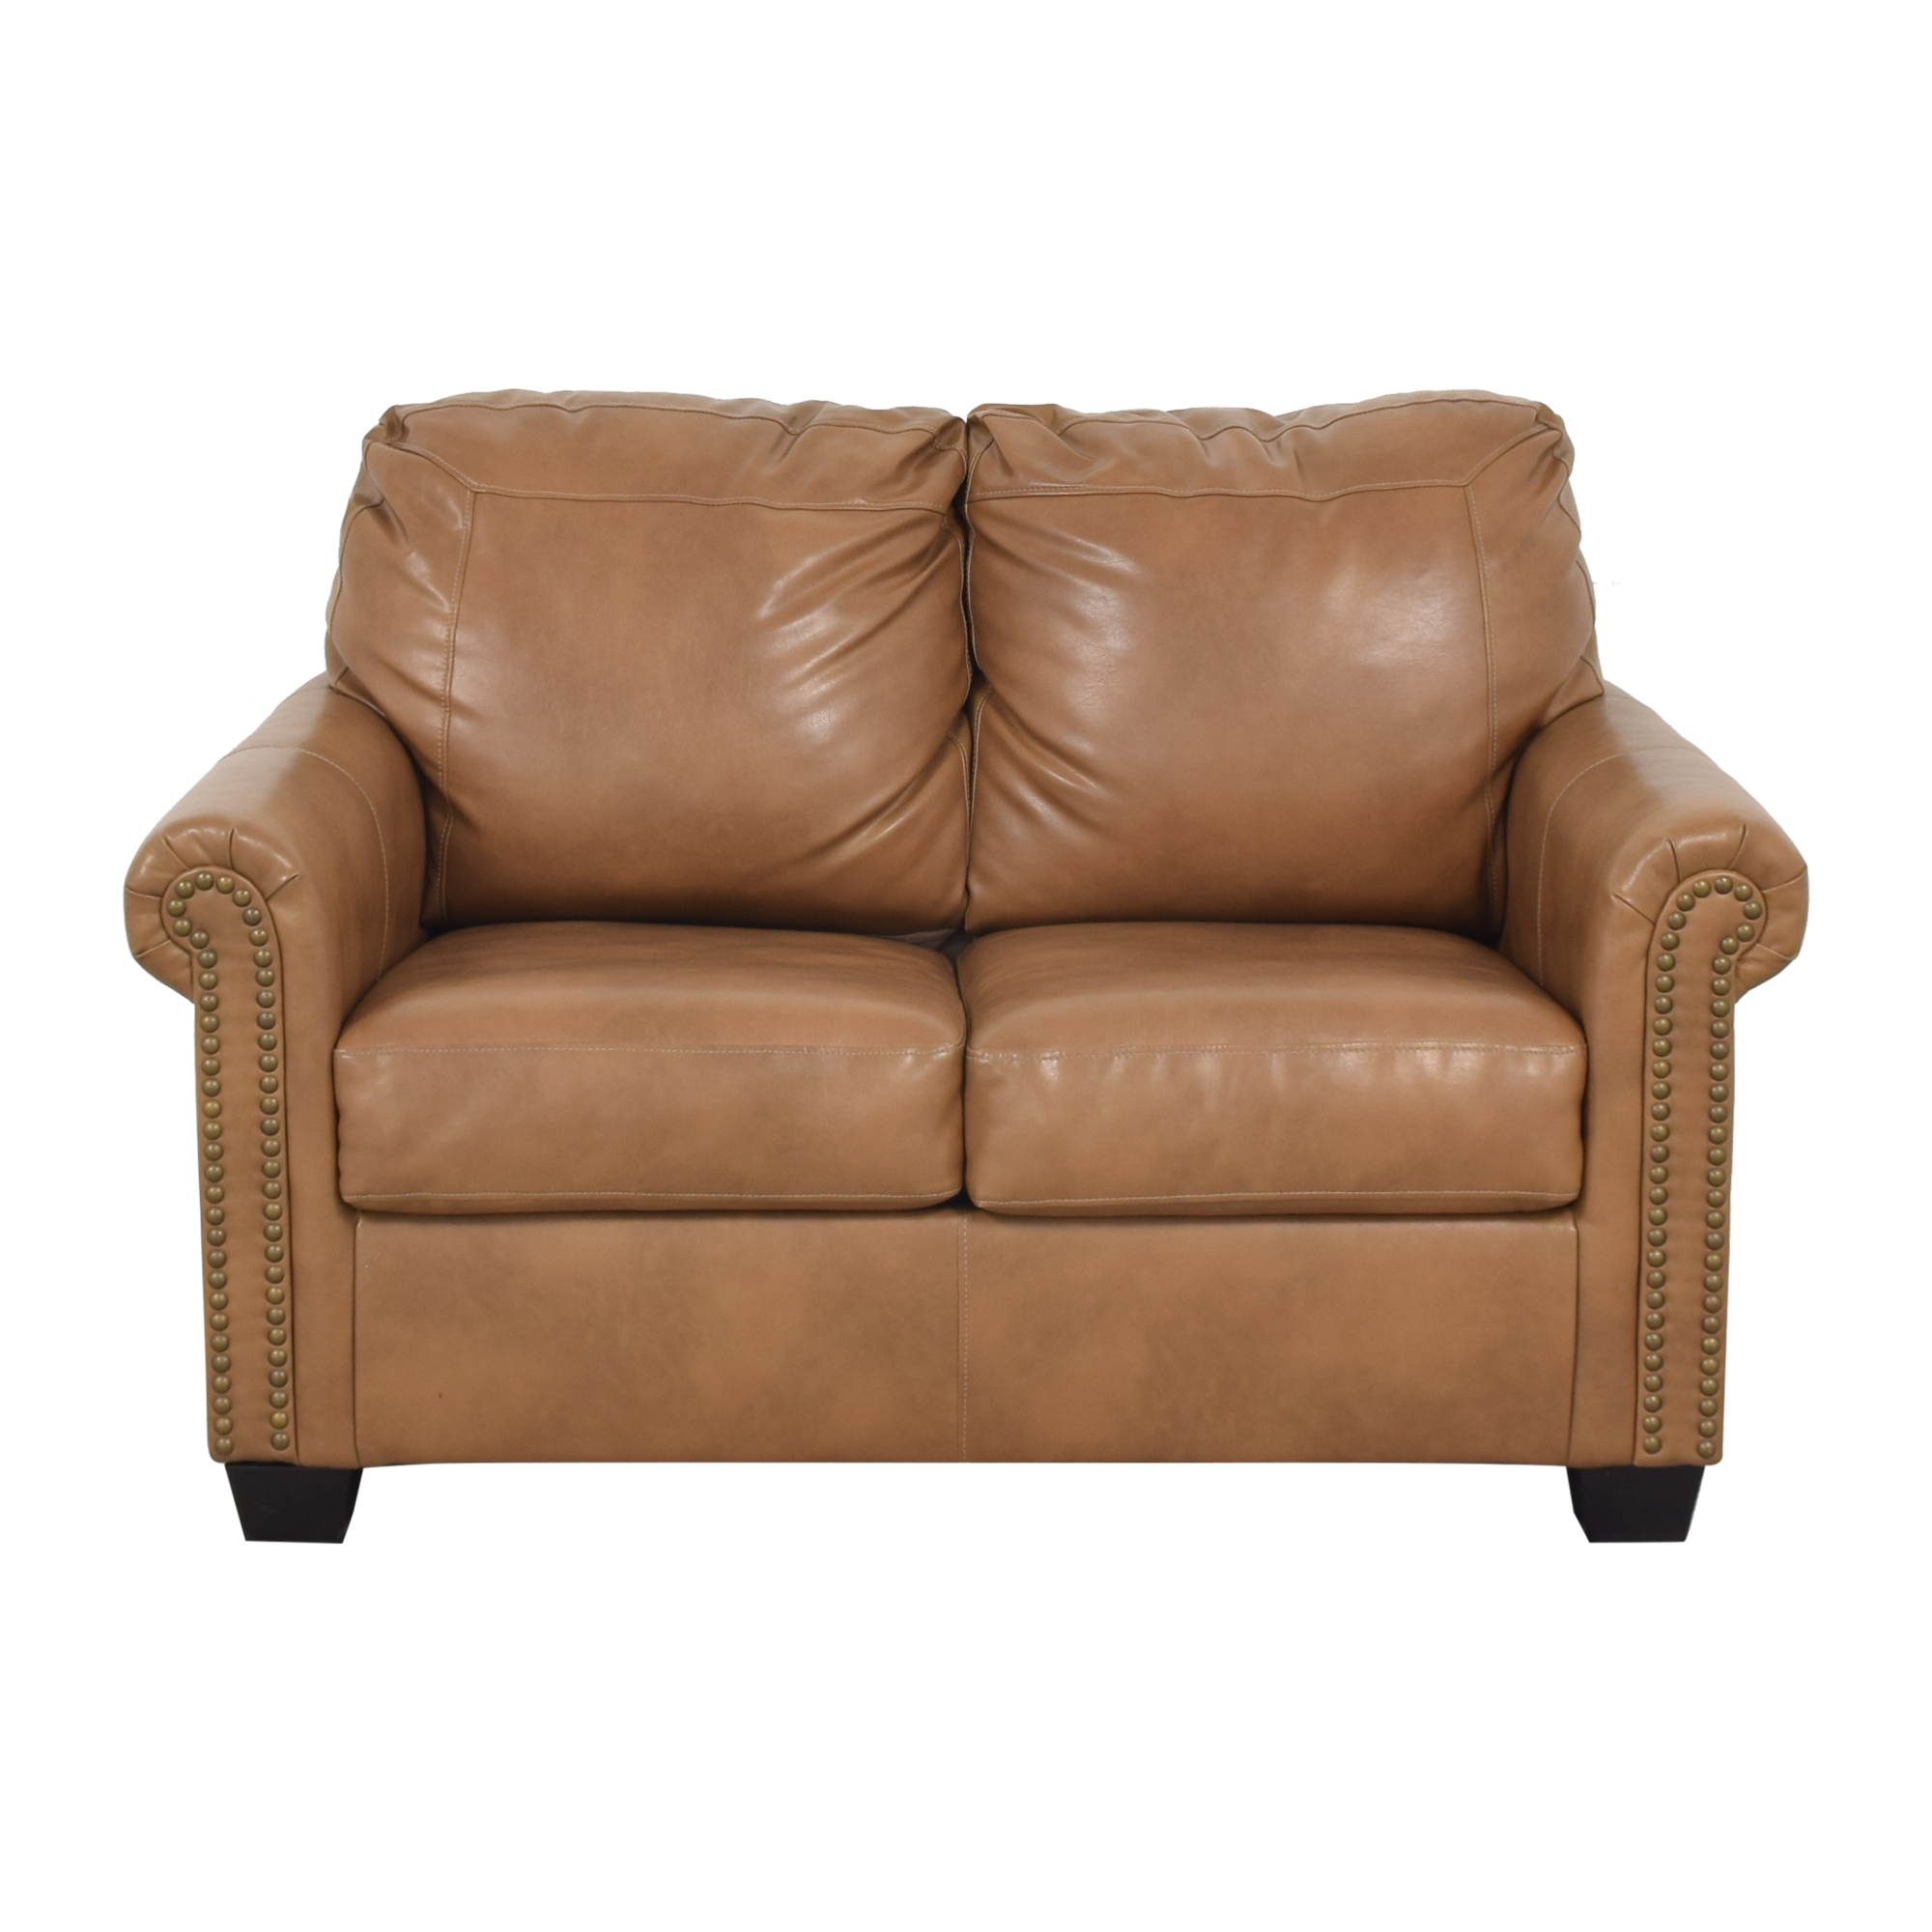 buy Overstock Caramel Leather Twin Pull Out Sofa Overstock Sofa Beds